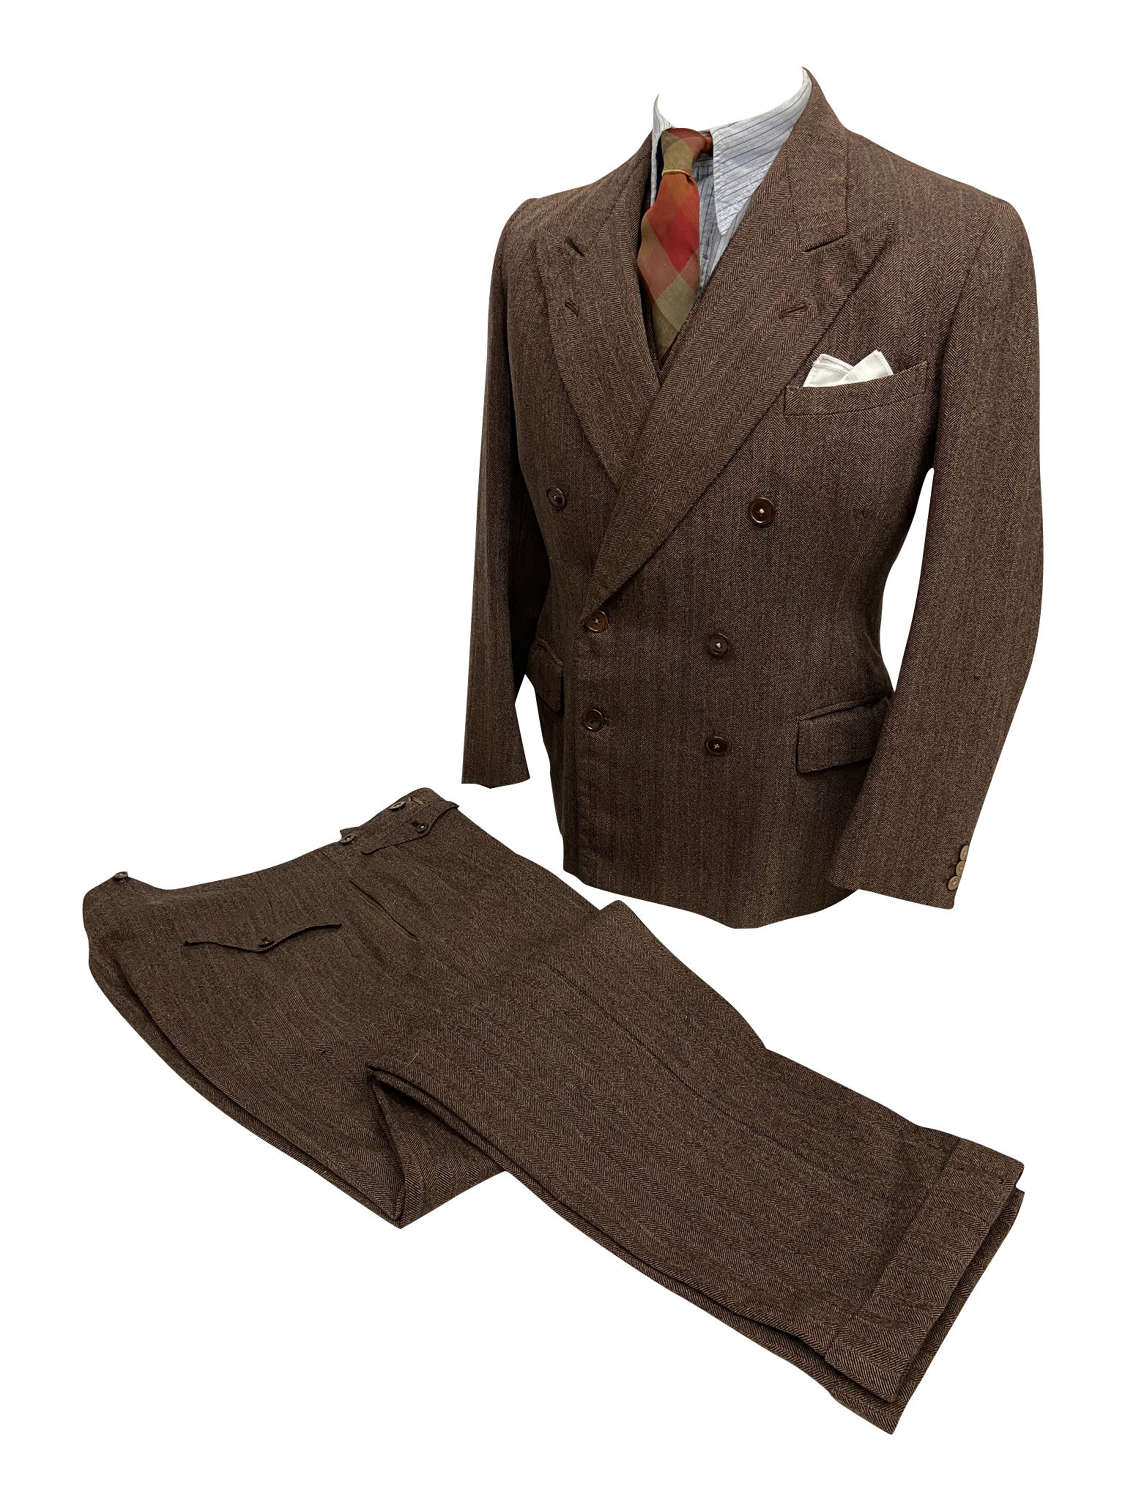 Original 1930s Three Piece Brown Herringbone Striped Suit